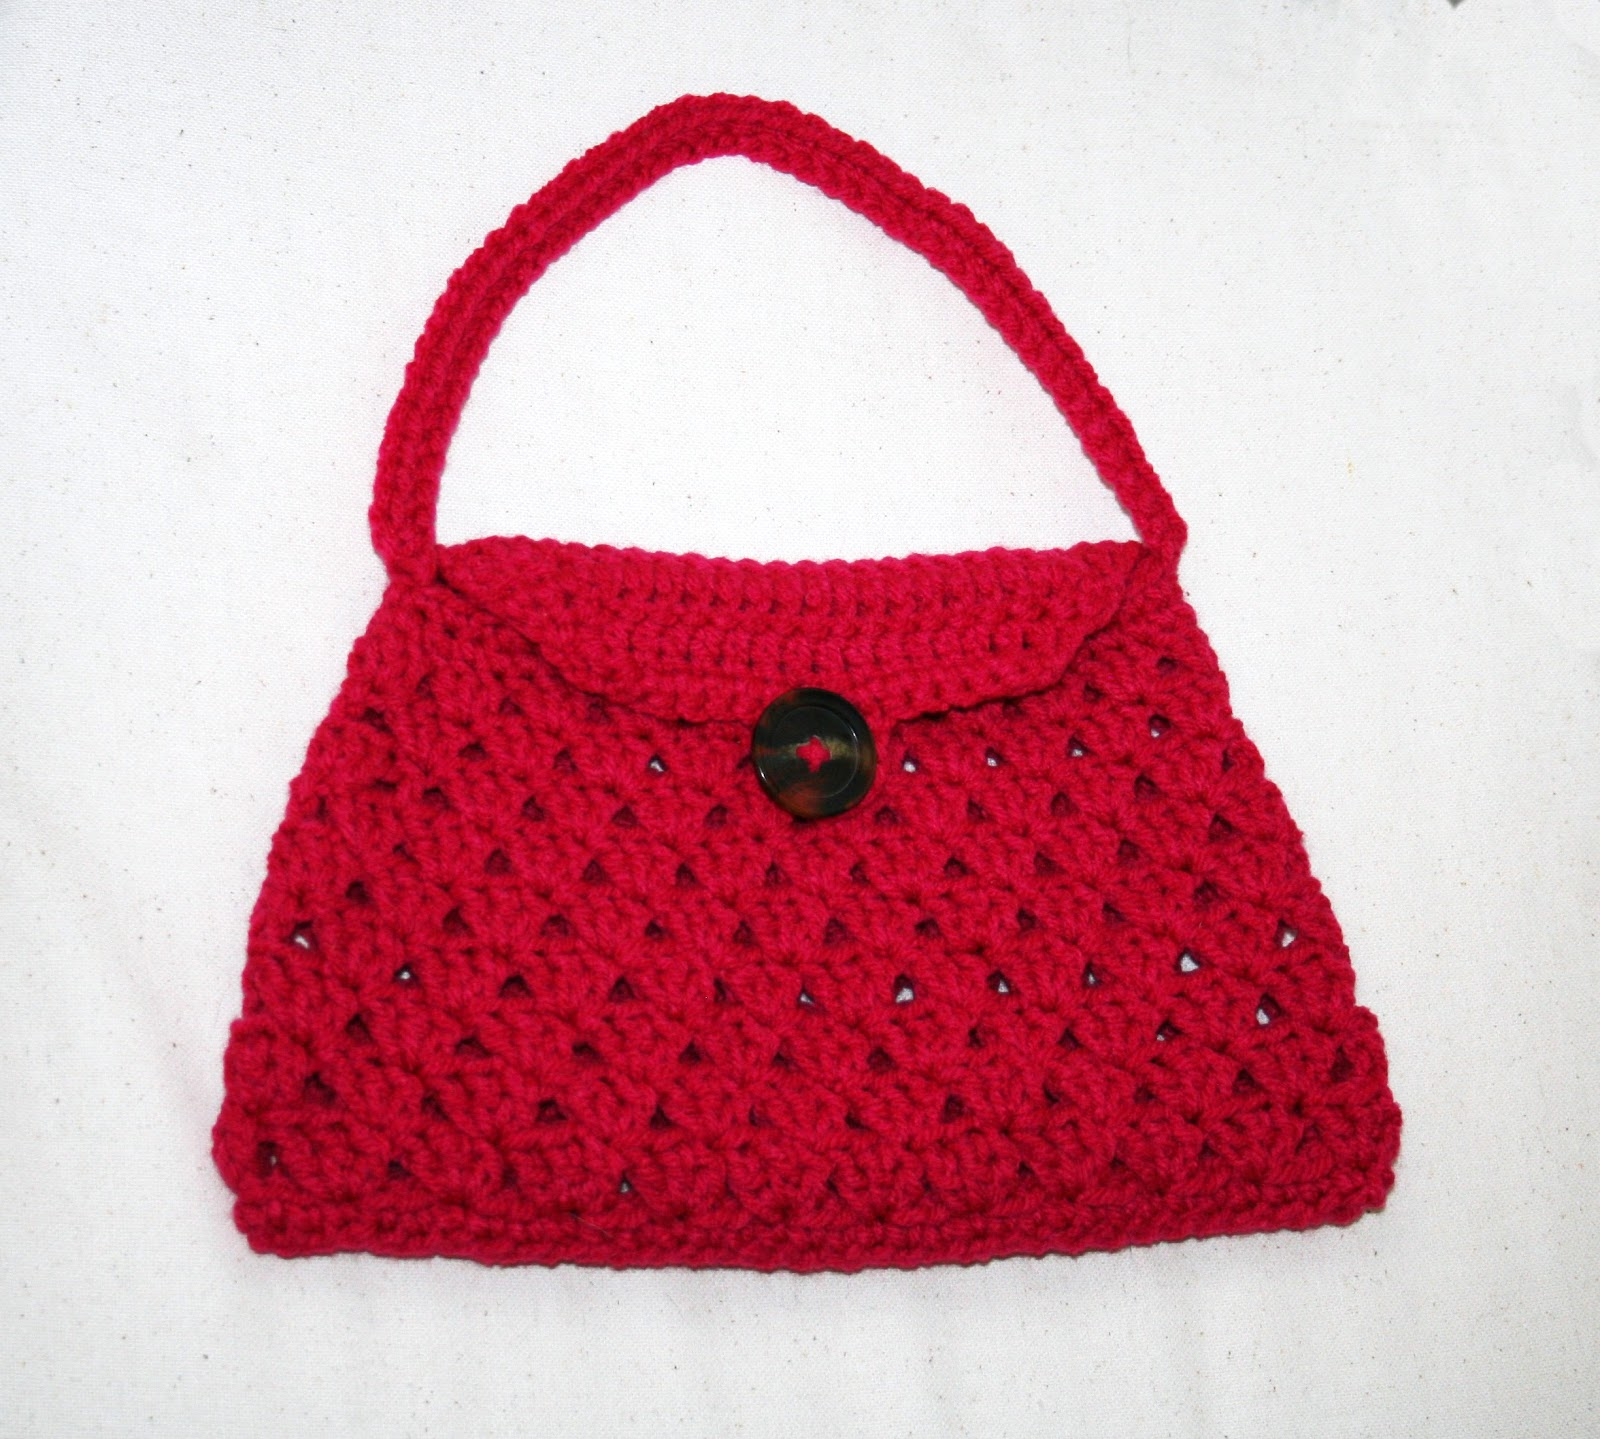 Crochet Handbags : Tampa Bay Crochet: Free Crochet Pattern: Stylish Crochet Handbag